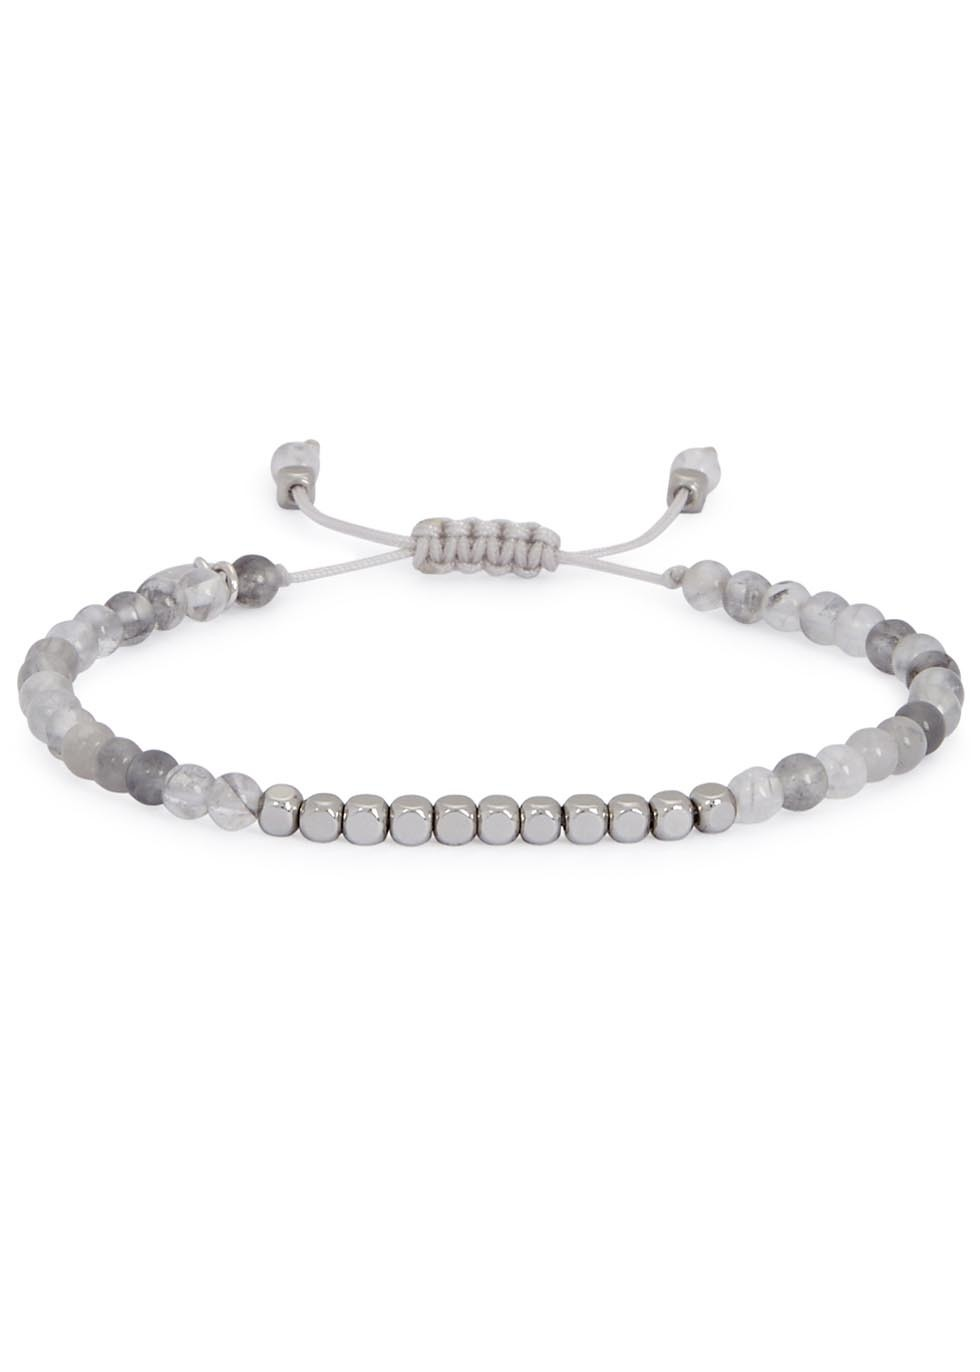 Marylebone Rock Crystal Beaded Bracelet - predominant colour: light grey; occasions: casual, creative work; size: standard; material: fabric/cotton; finish: plain; embellishment: beading; style: bead; season: a/w 2016; wardrobe: highlight